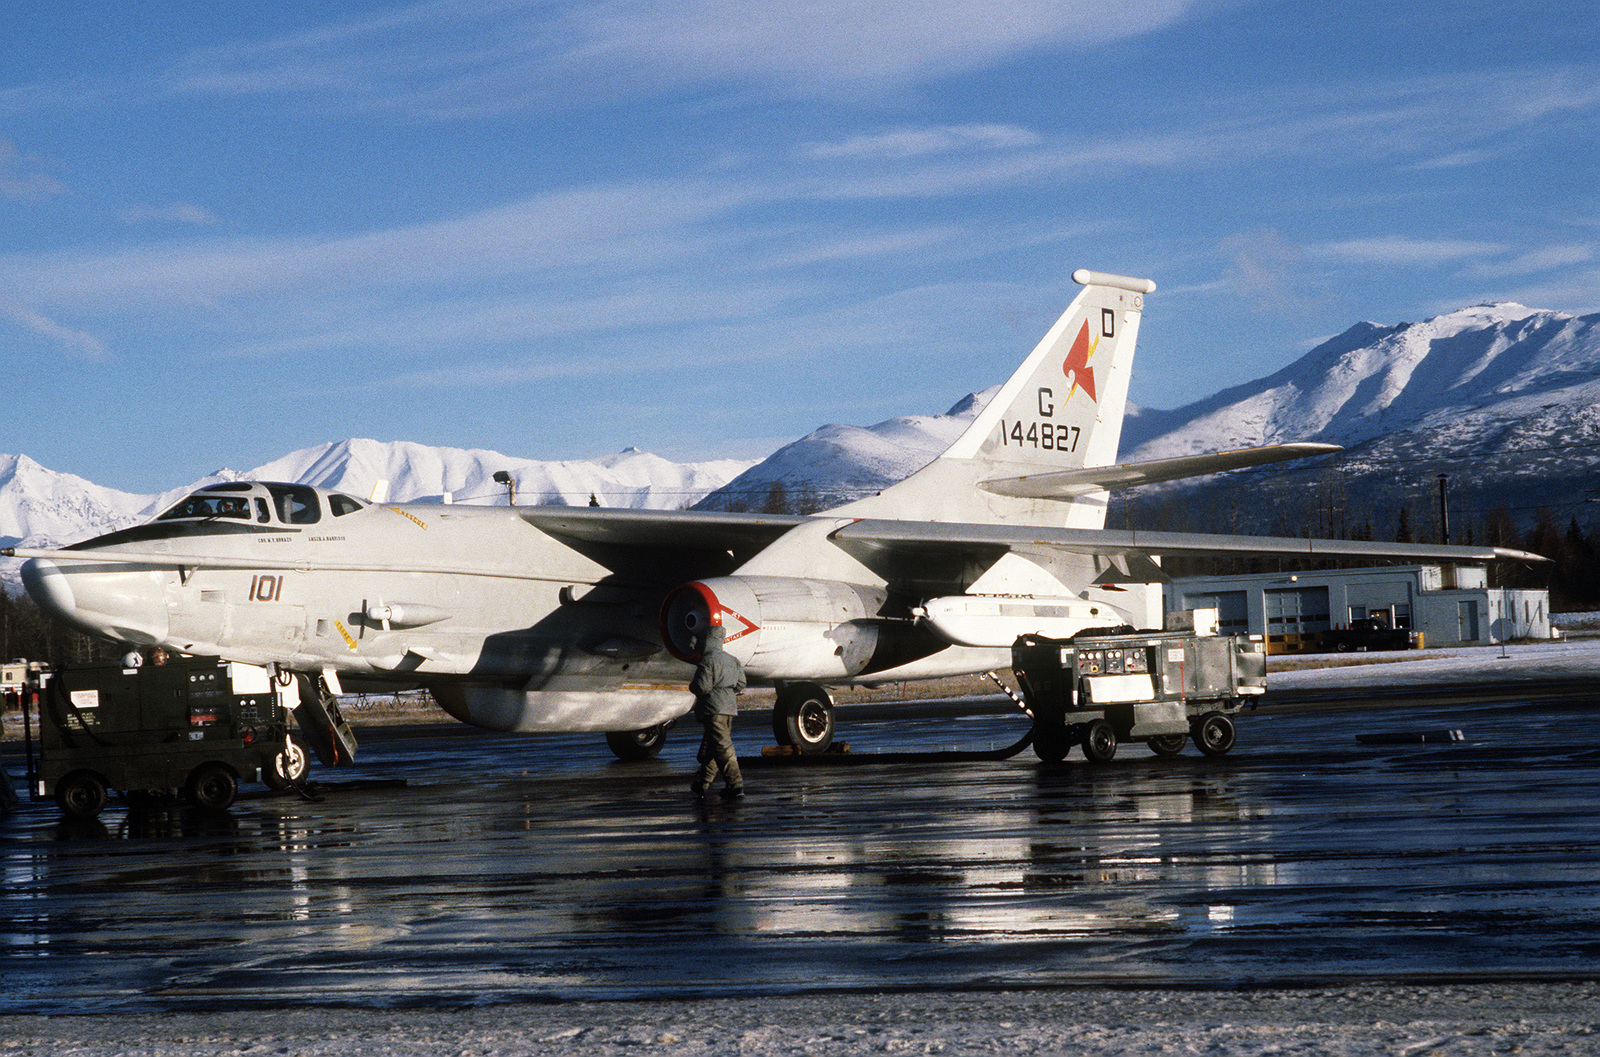 A close-up view of an ERA-3B Skywarrior aircraft on the ramp during